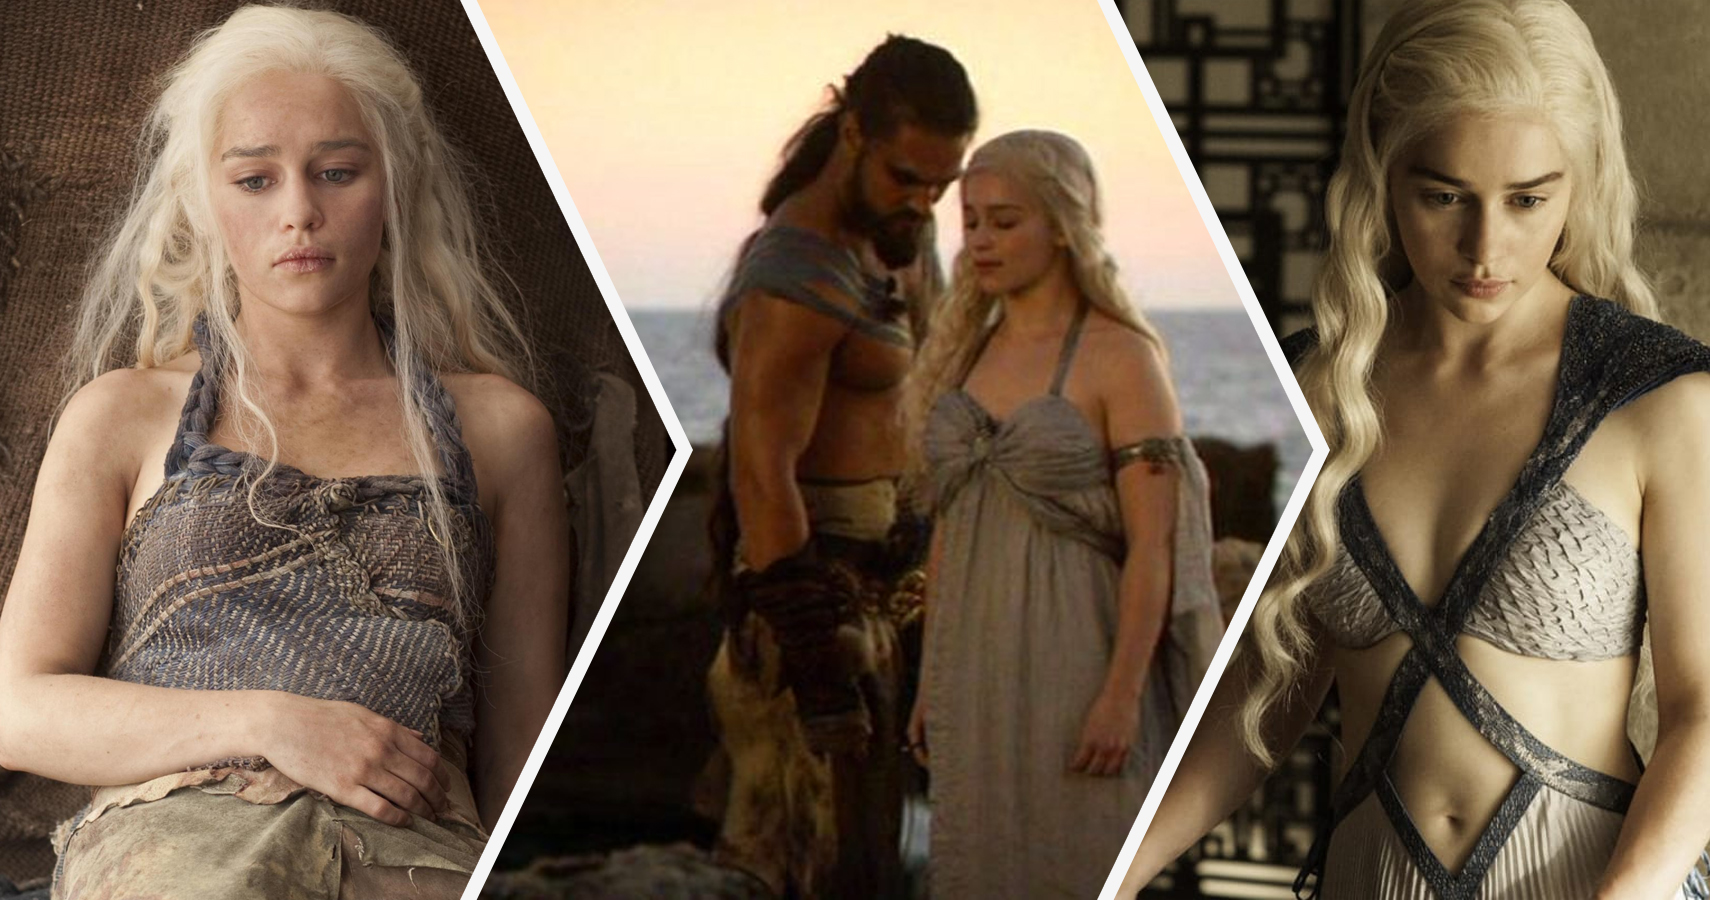 The Cast Of Game of Thrones: What They Looked Like In Their First Season And Now